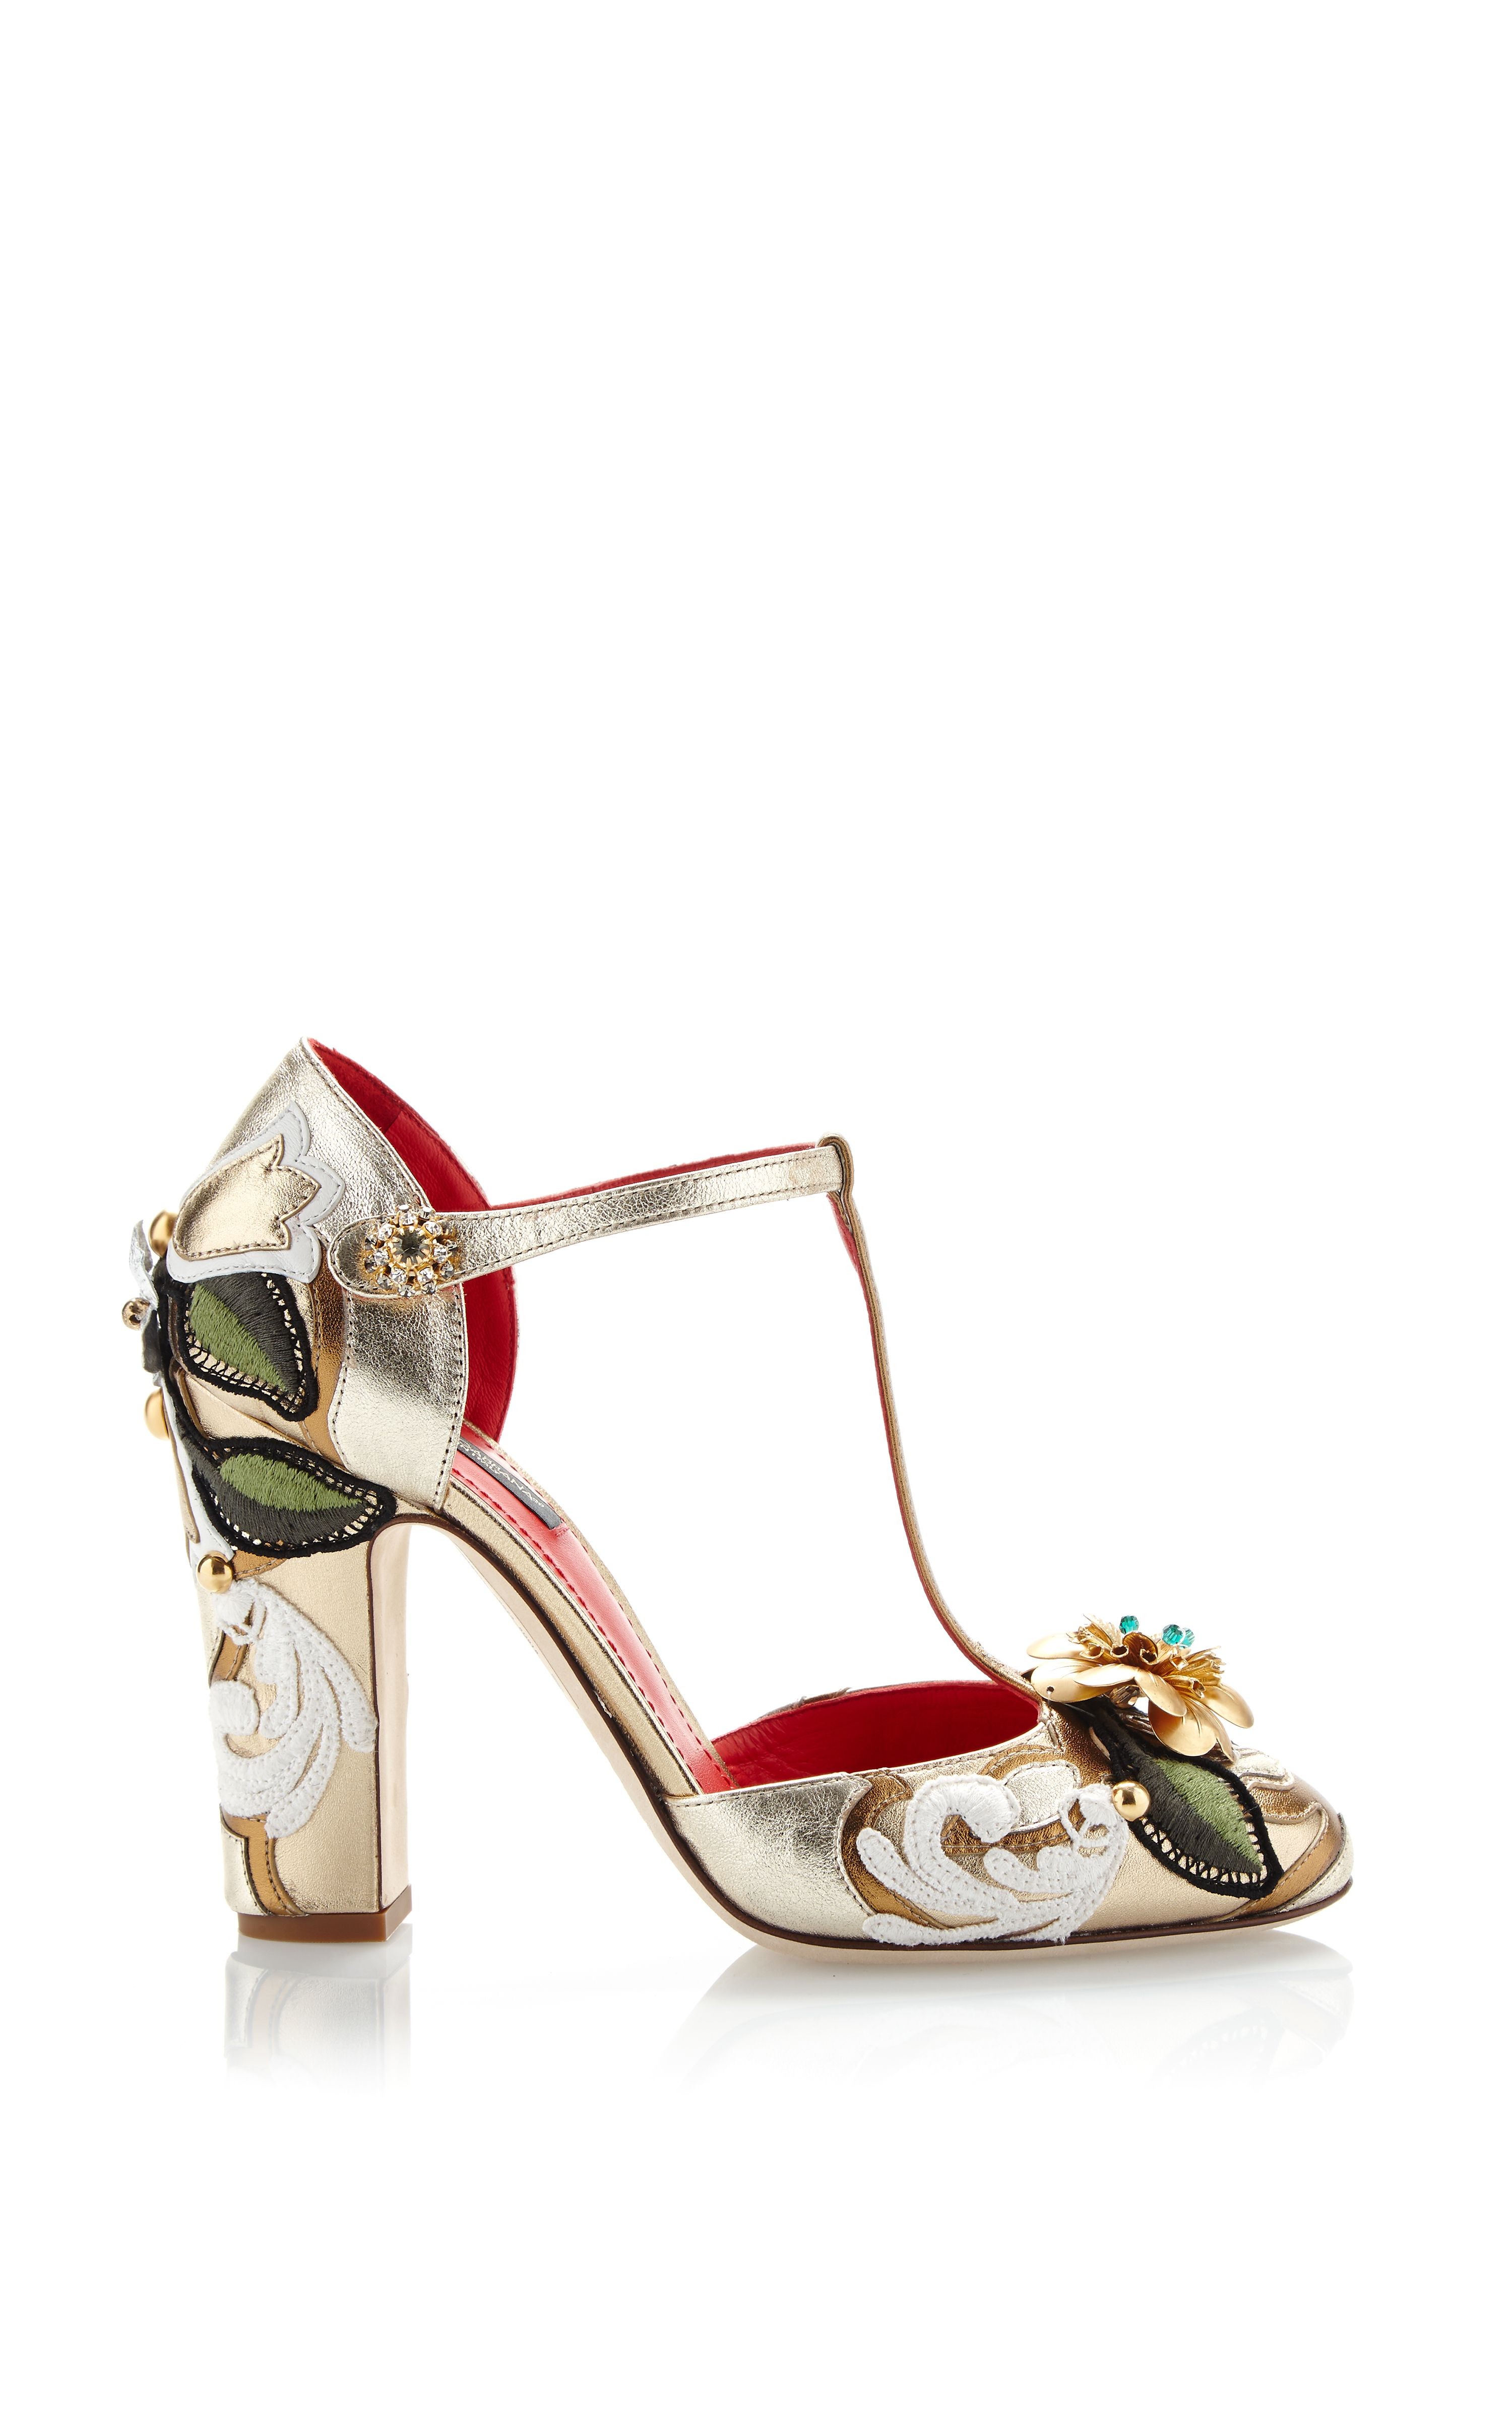 Dolce & Gabbana Metallic Leather Slingback Sandals many kinds of cheap online unRbvi